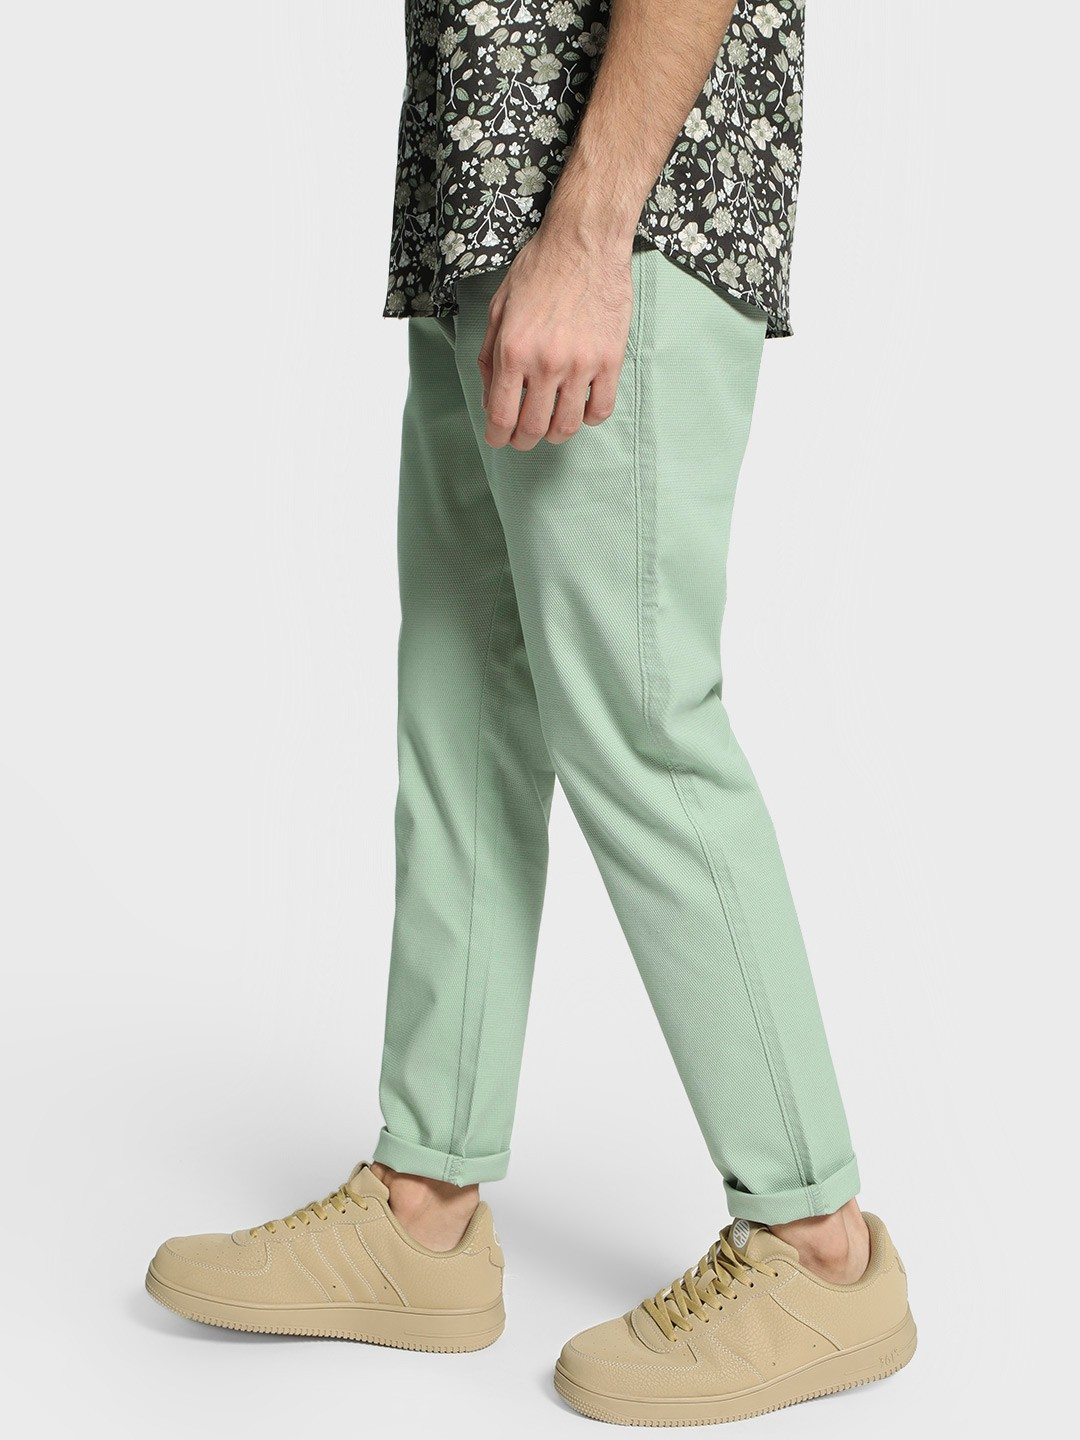 Mr Button Green Dobby Textured Slim Trousers 1